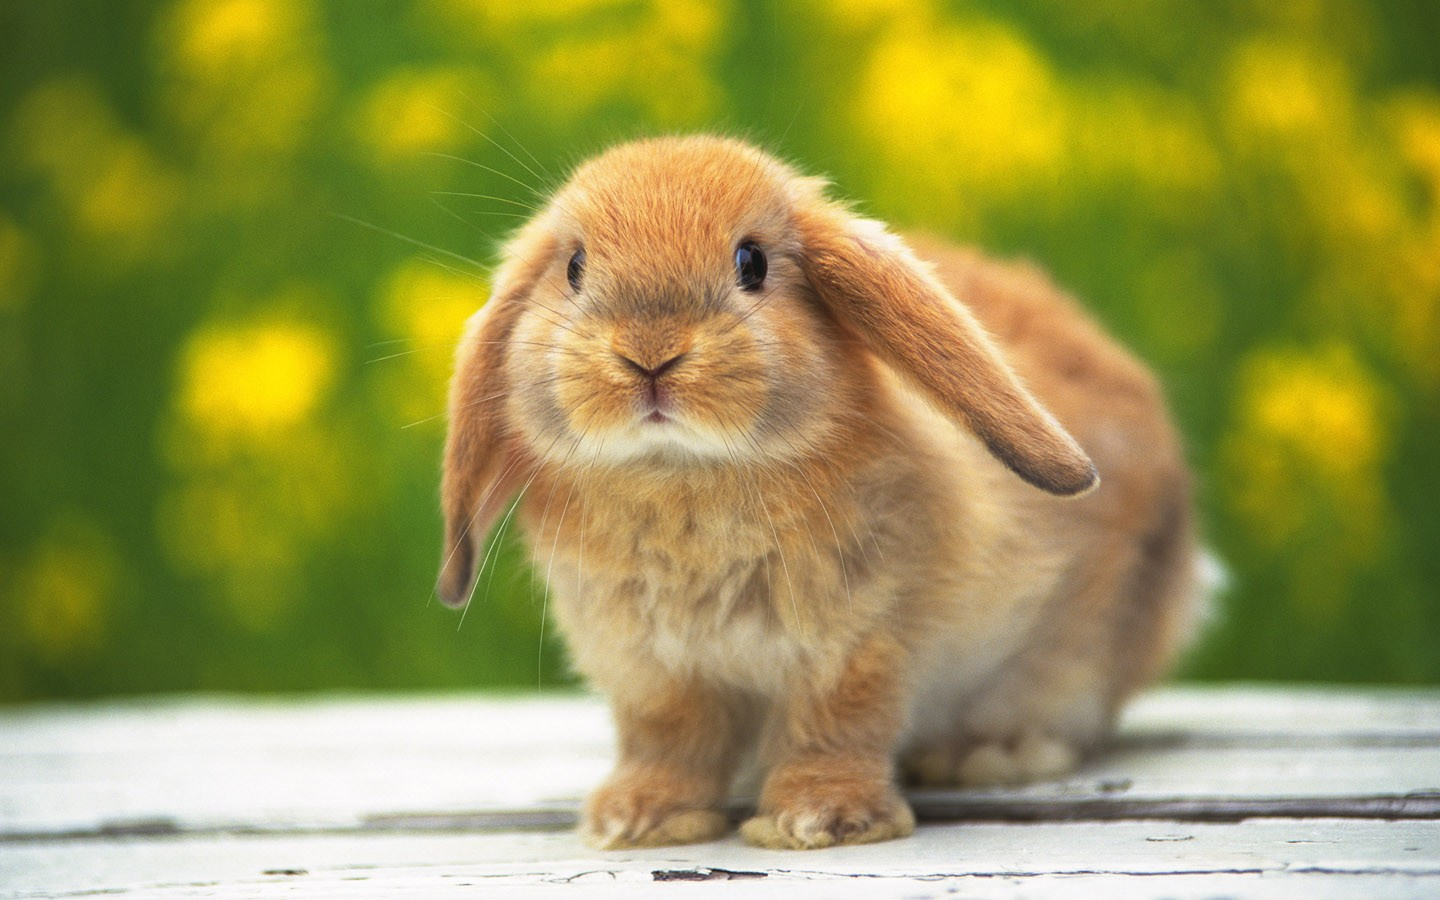 Bunny Wallpaper; Bunny Wallpaper; Bunny Wallpaper ...